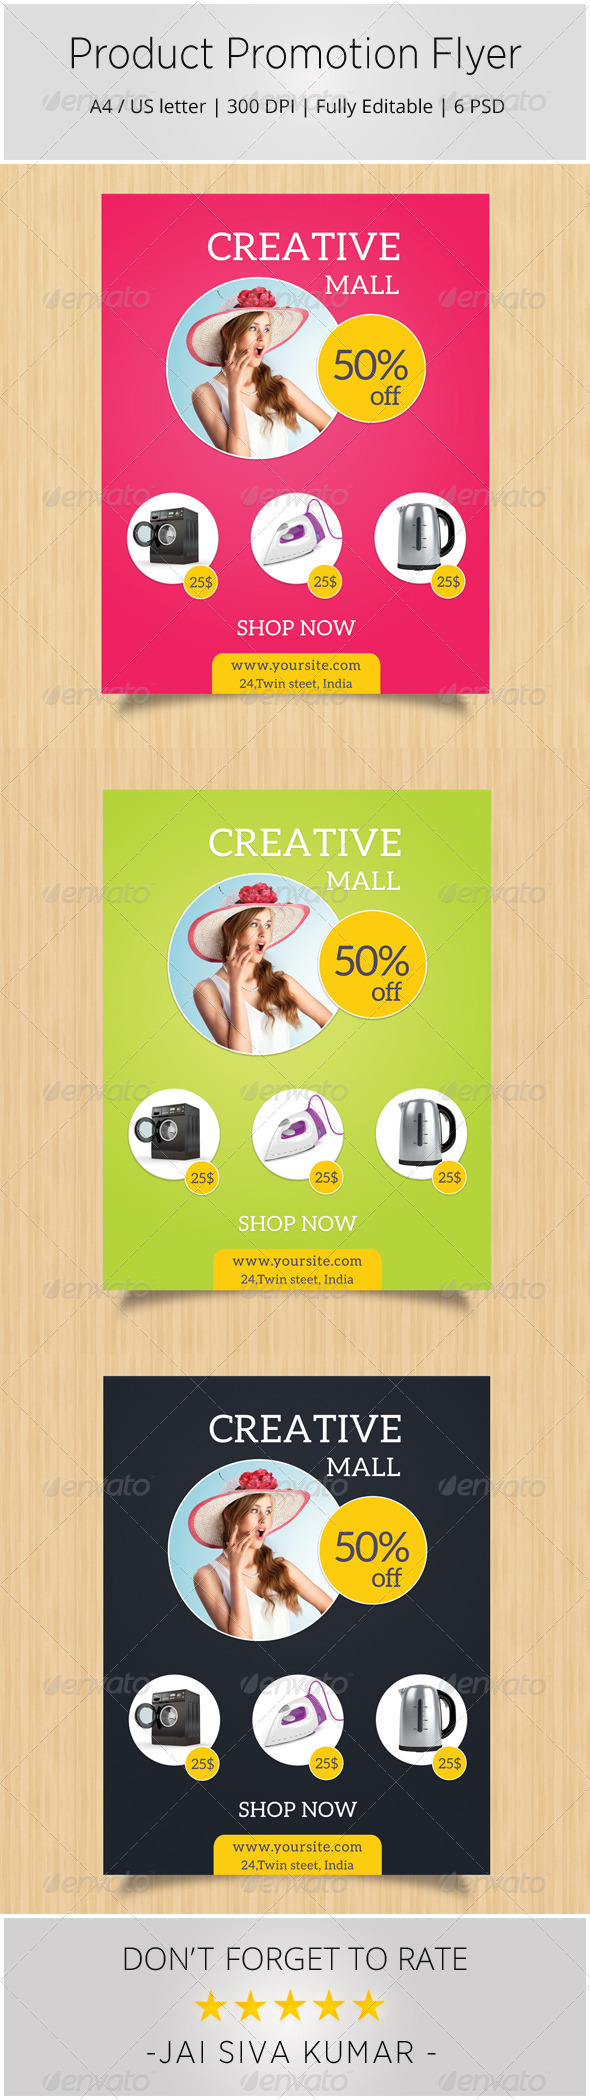 GraphicRiver Product Promotion Flyer 6944090